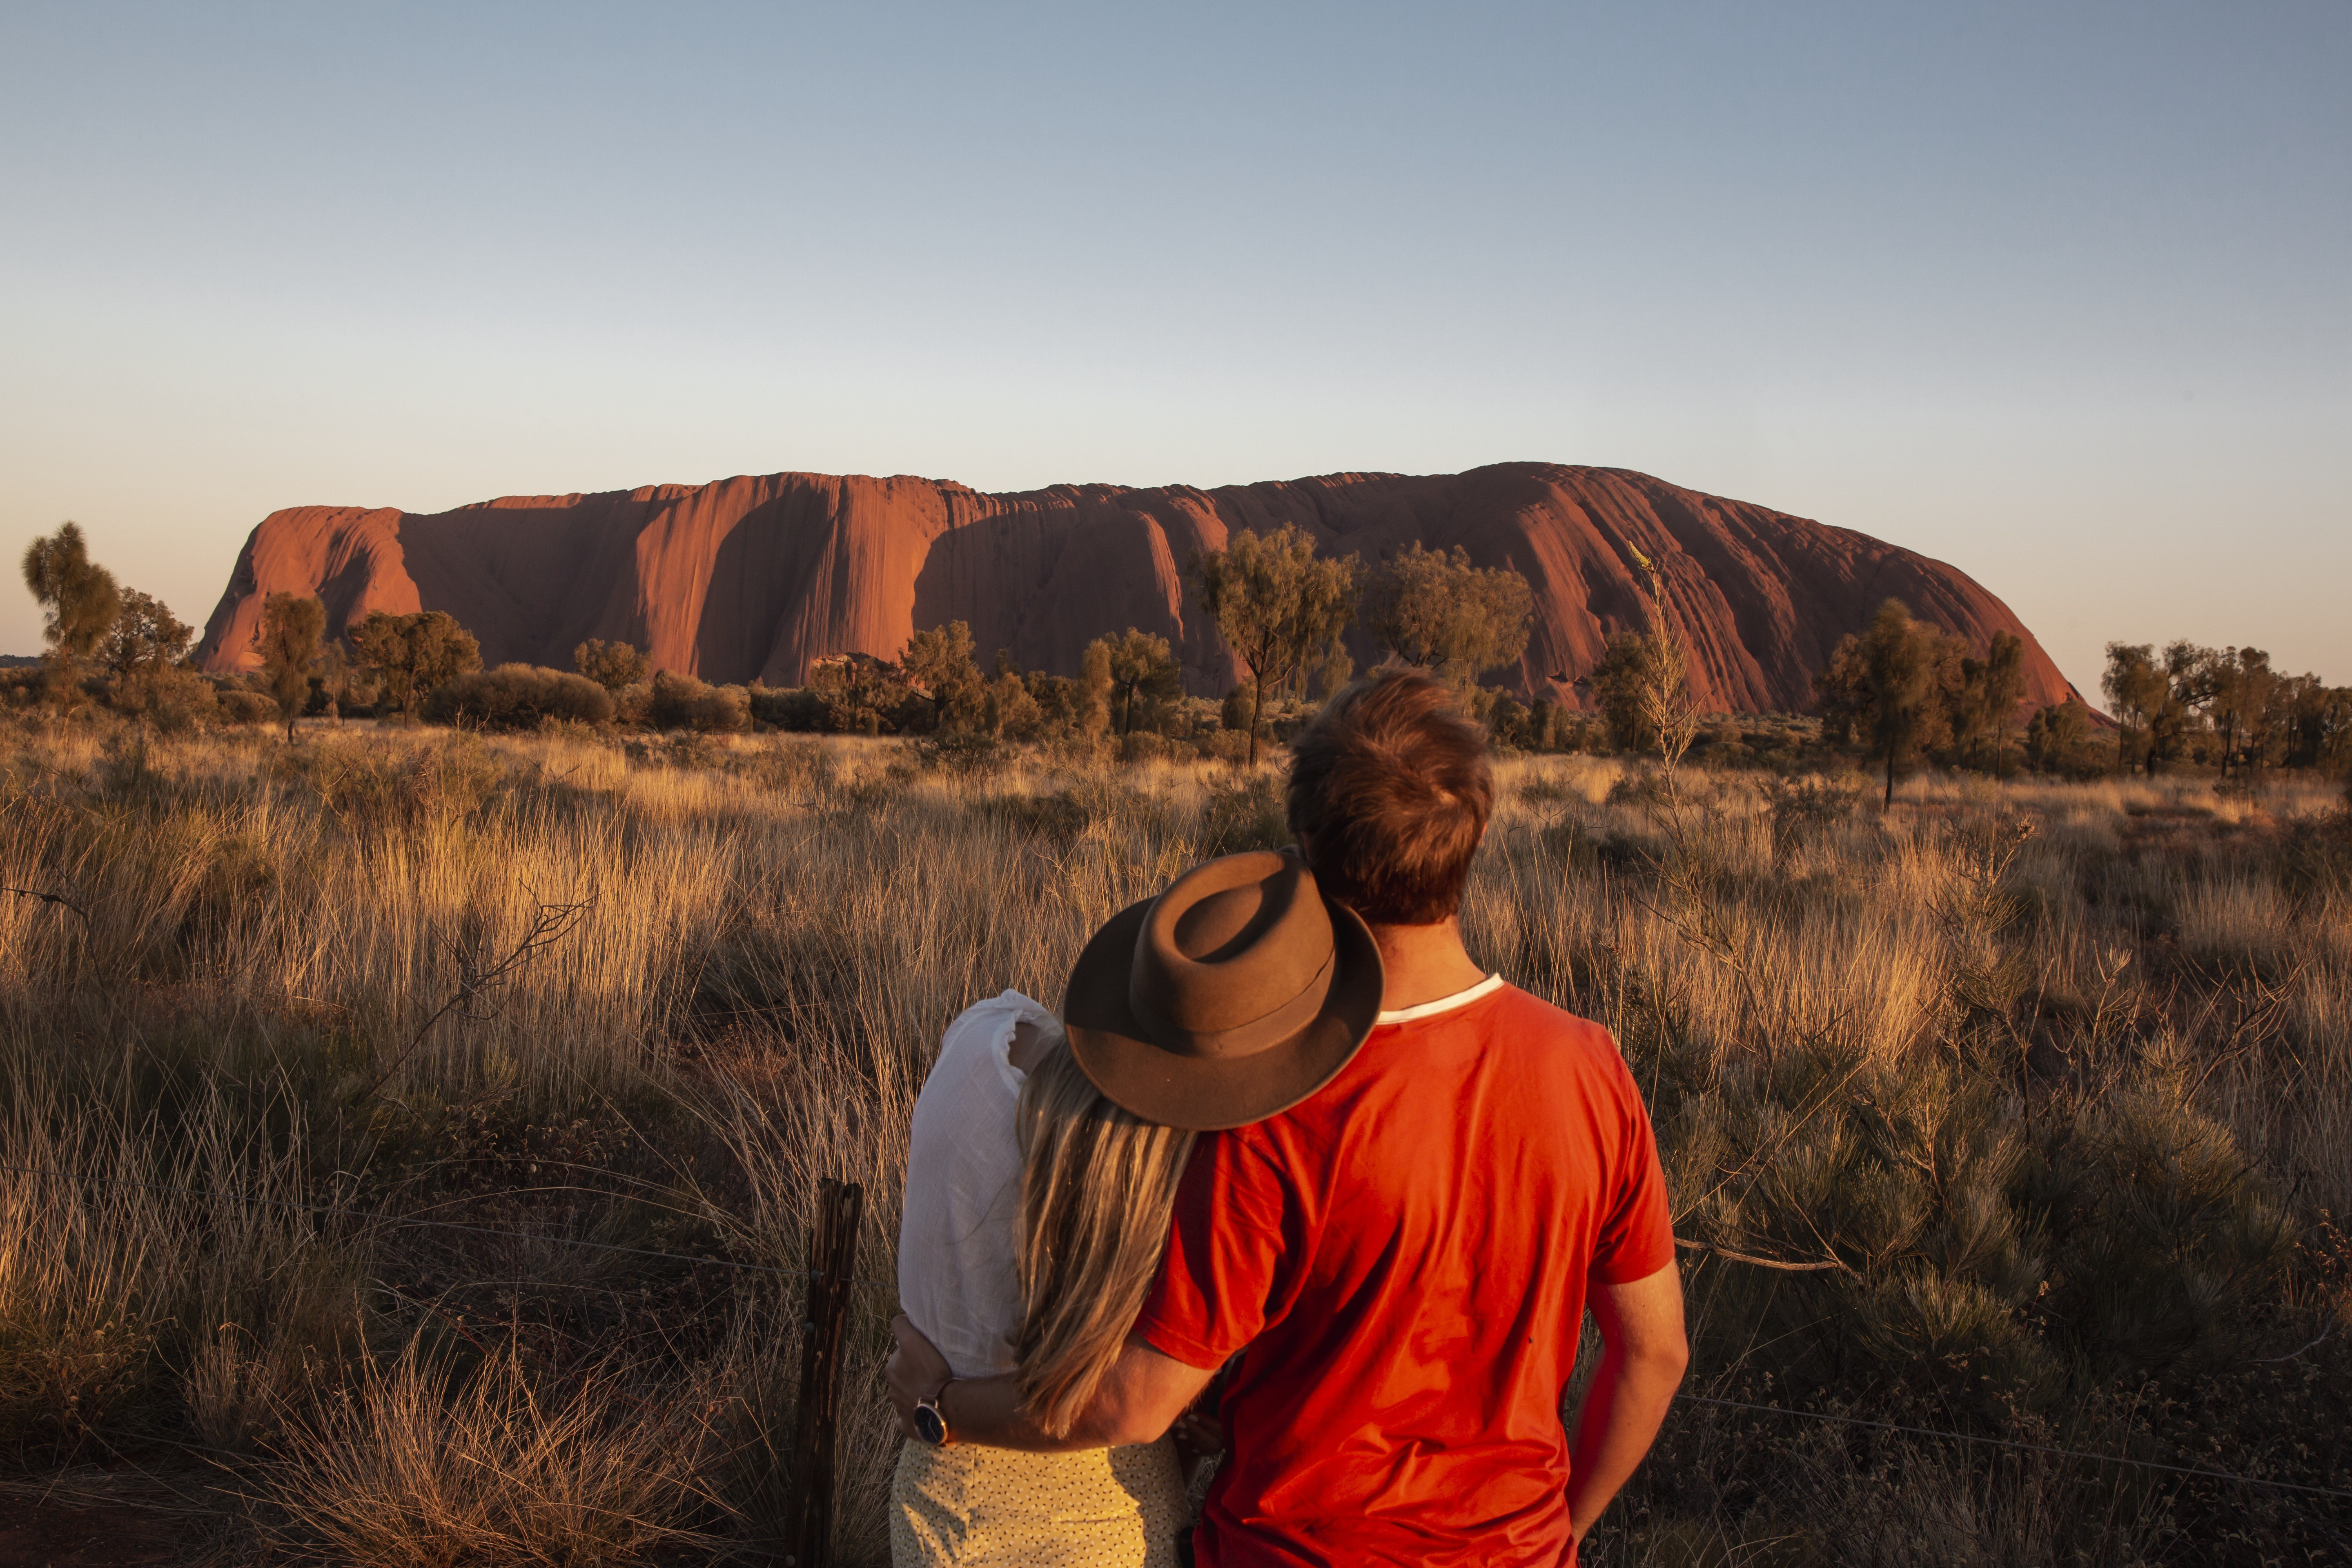 Couple at Uluru/Ayers Rock